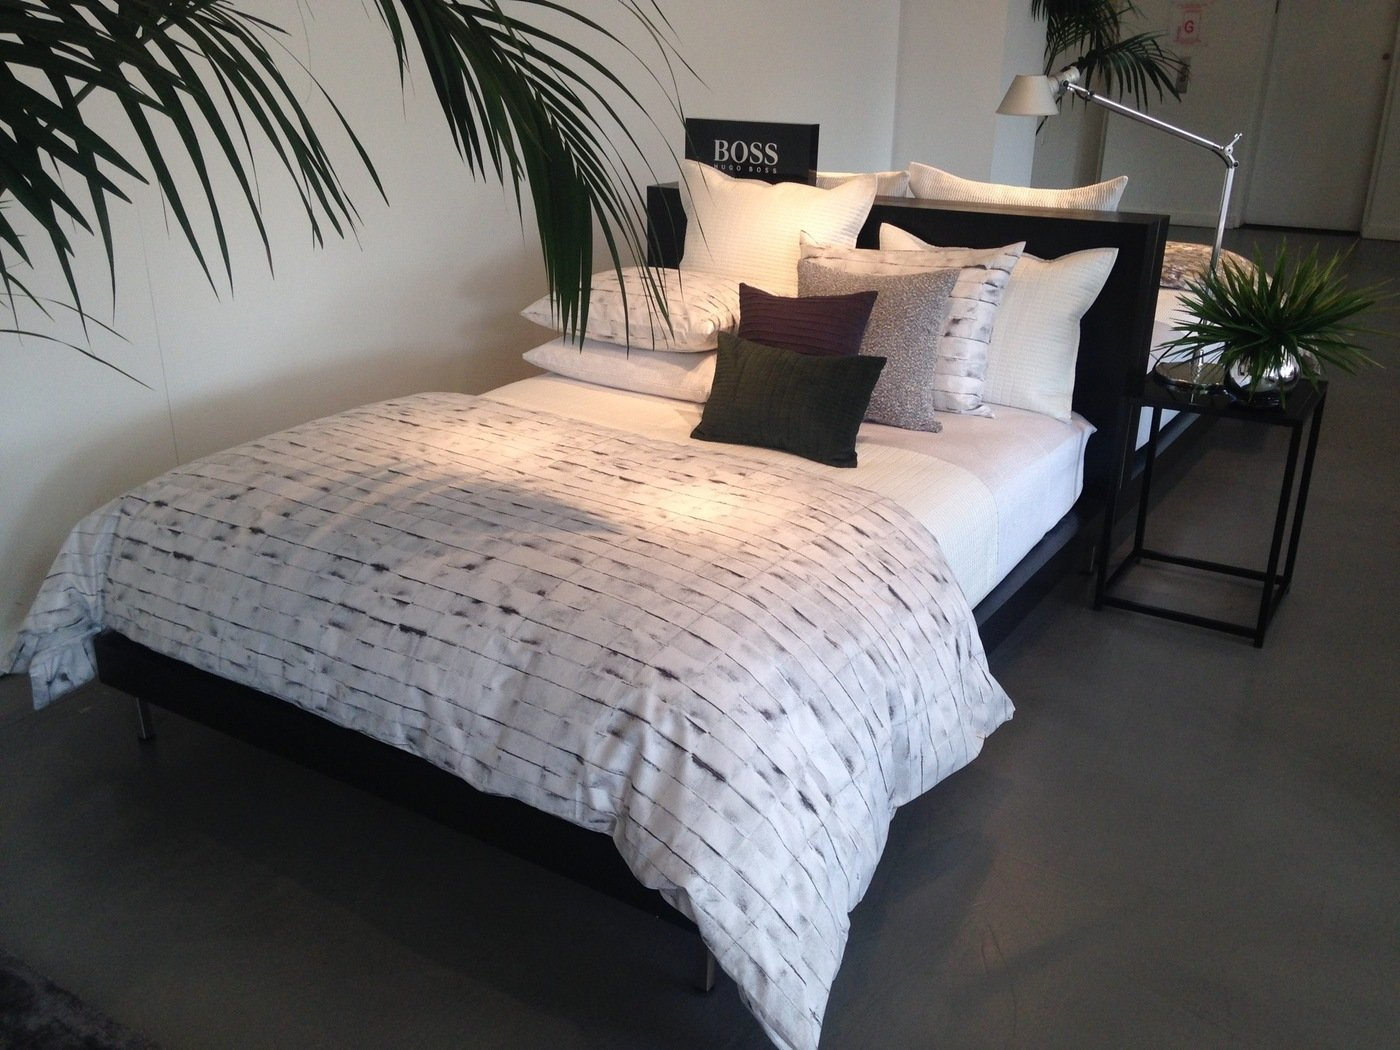 Hugo Boss Home Bedding By Emma Estrada At Coroflotcom